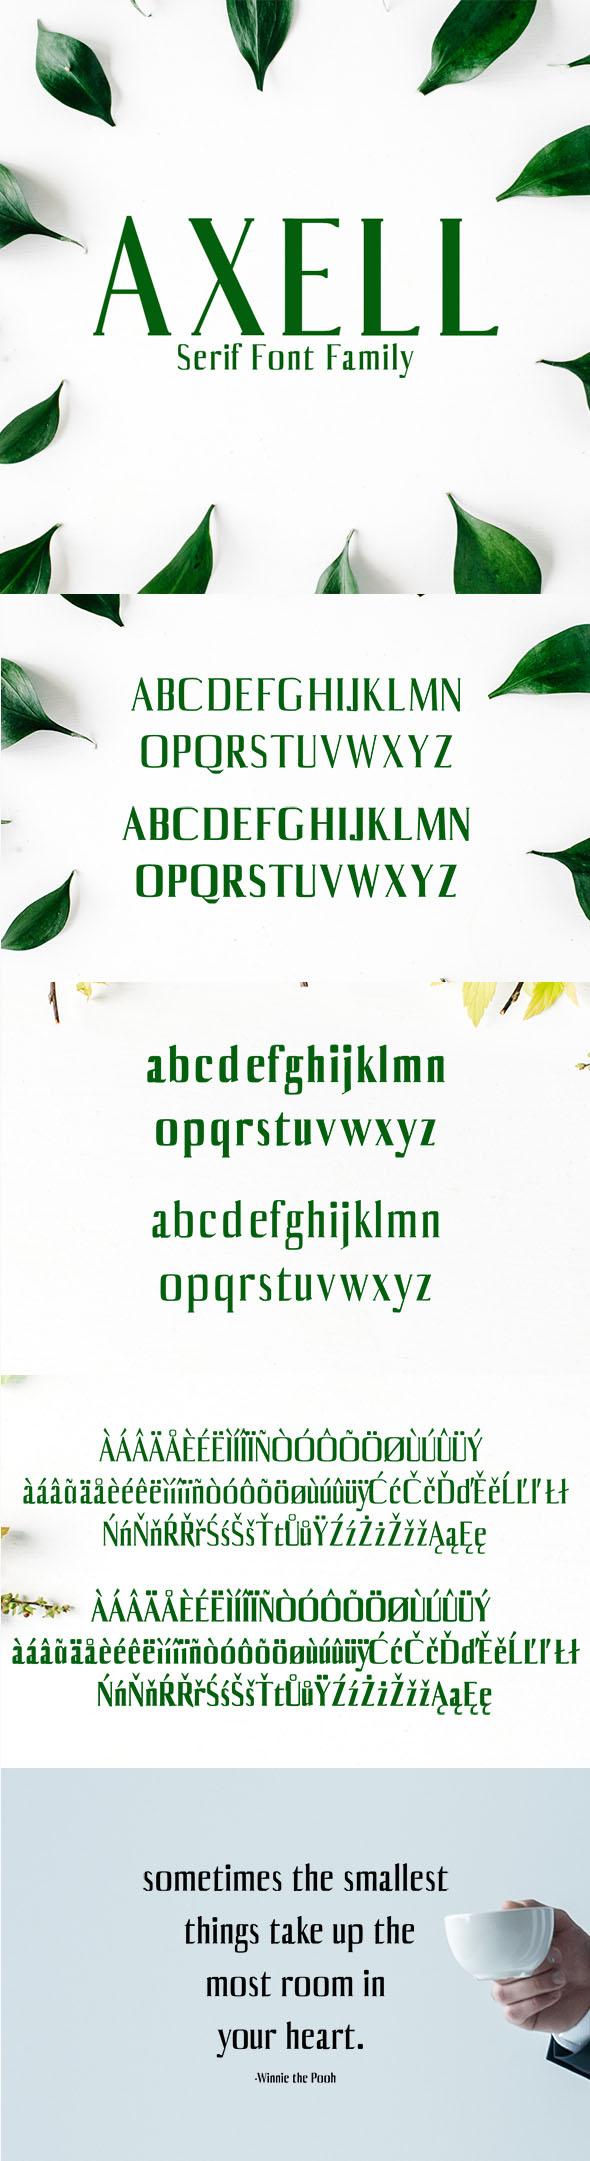 Free Font Axell Serif Font Family Download